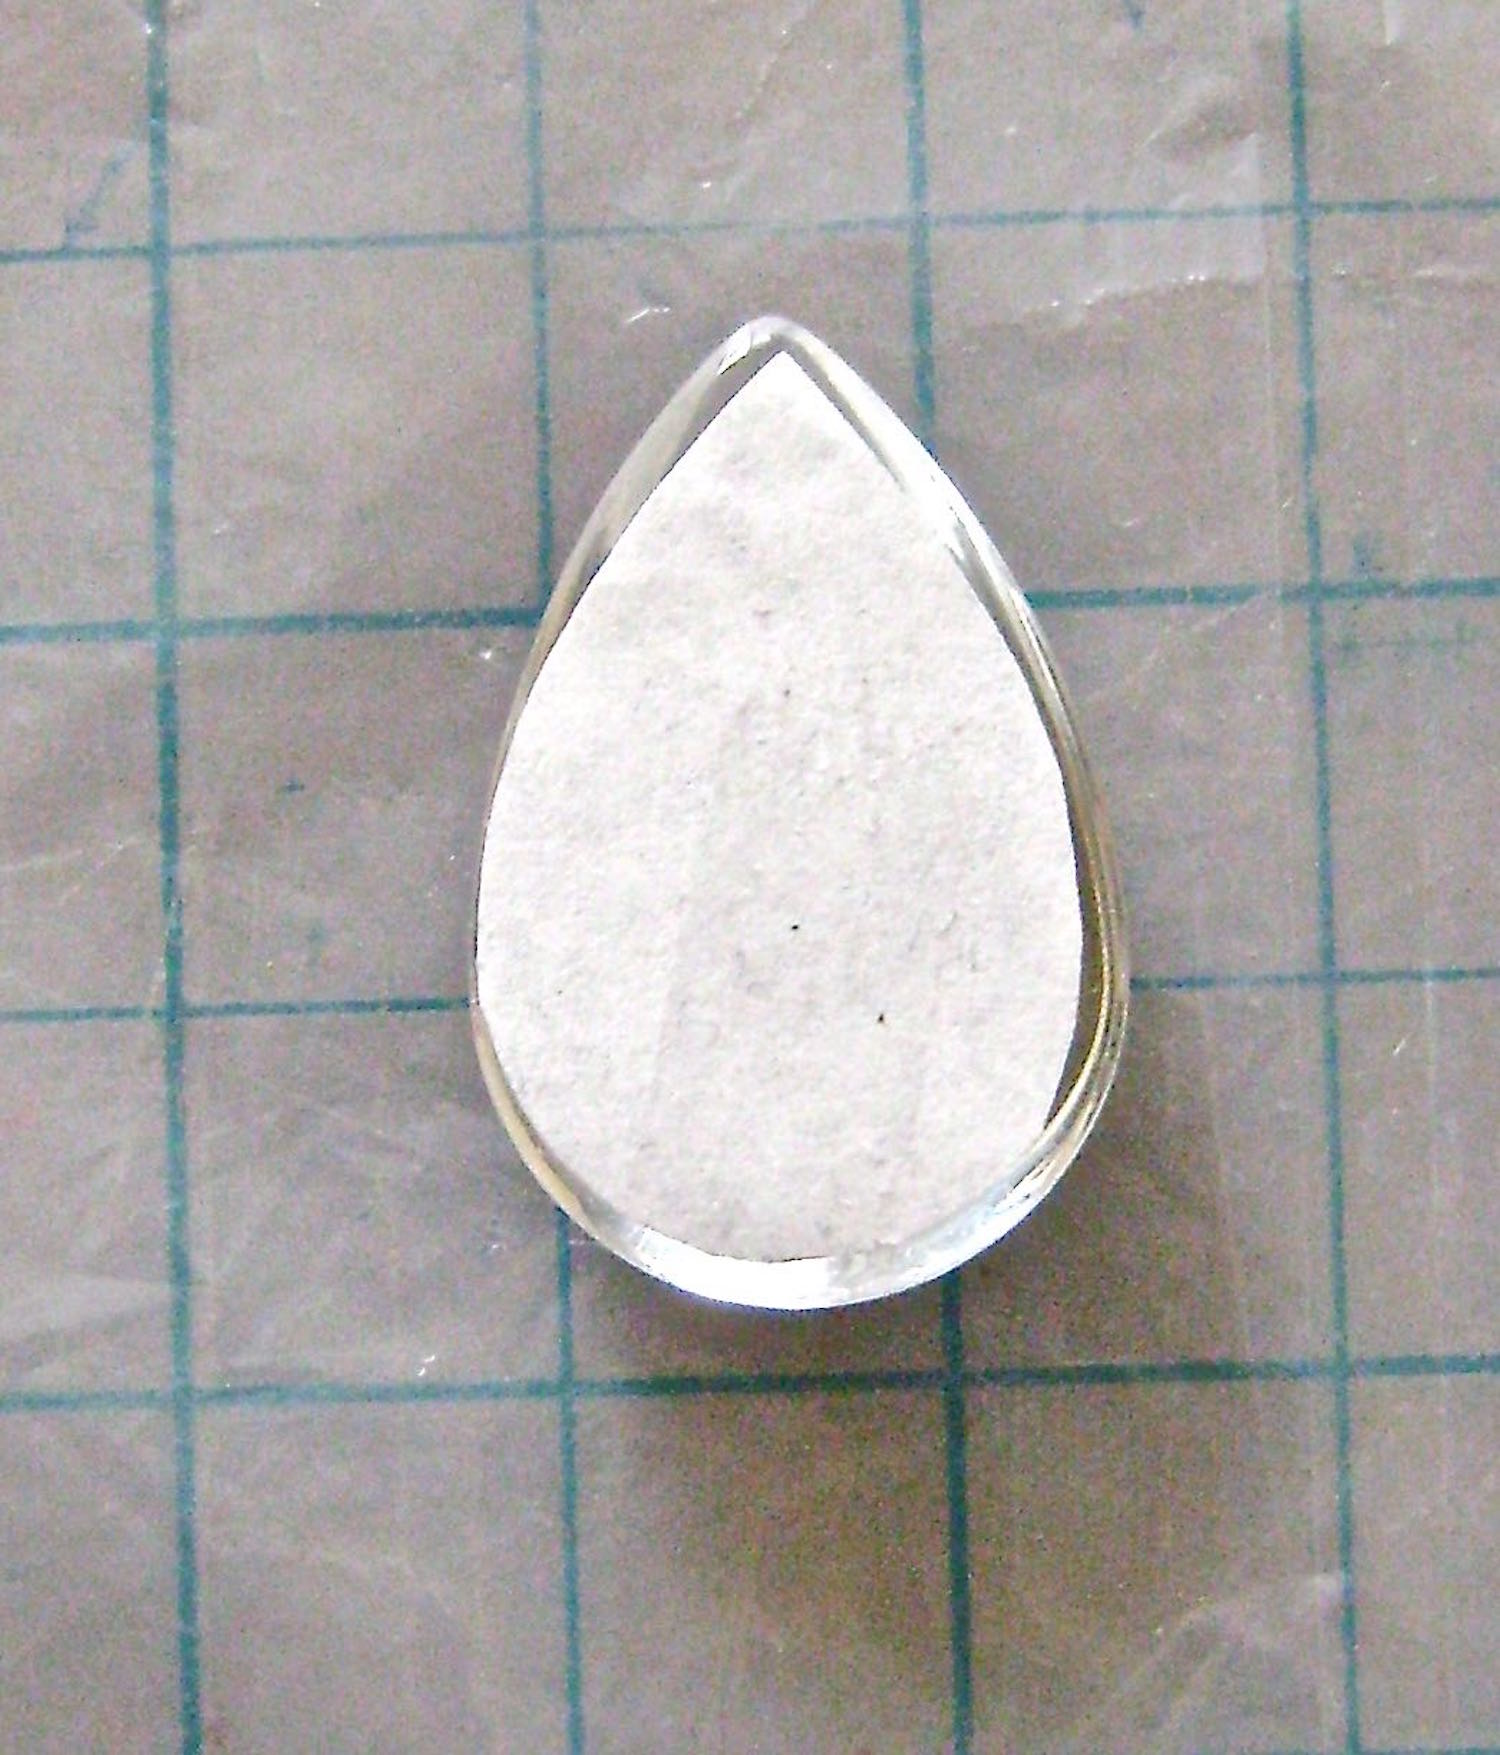 step 9 - With the color side down, set the paper in place on the glass leaving a tiny margin outside the paper edge.  Work quickly.  Like the name suggests, Fast Finish dries super fast. The good news is, if you make a mistake in placement you can start over.  Put the pendant in hot tap water with detergent for a few minutes.  The glue and paper will slide right off and you'll have a clean piece of glass for your next try.